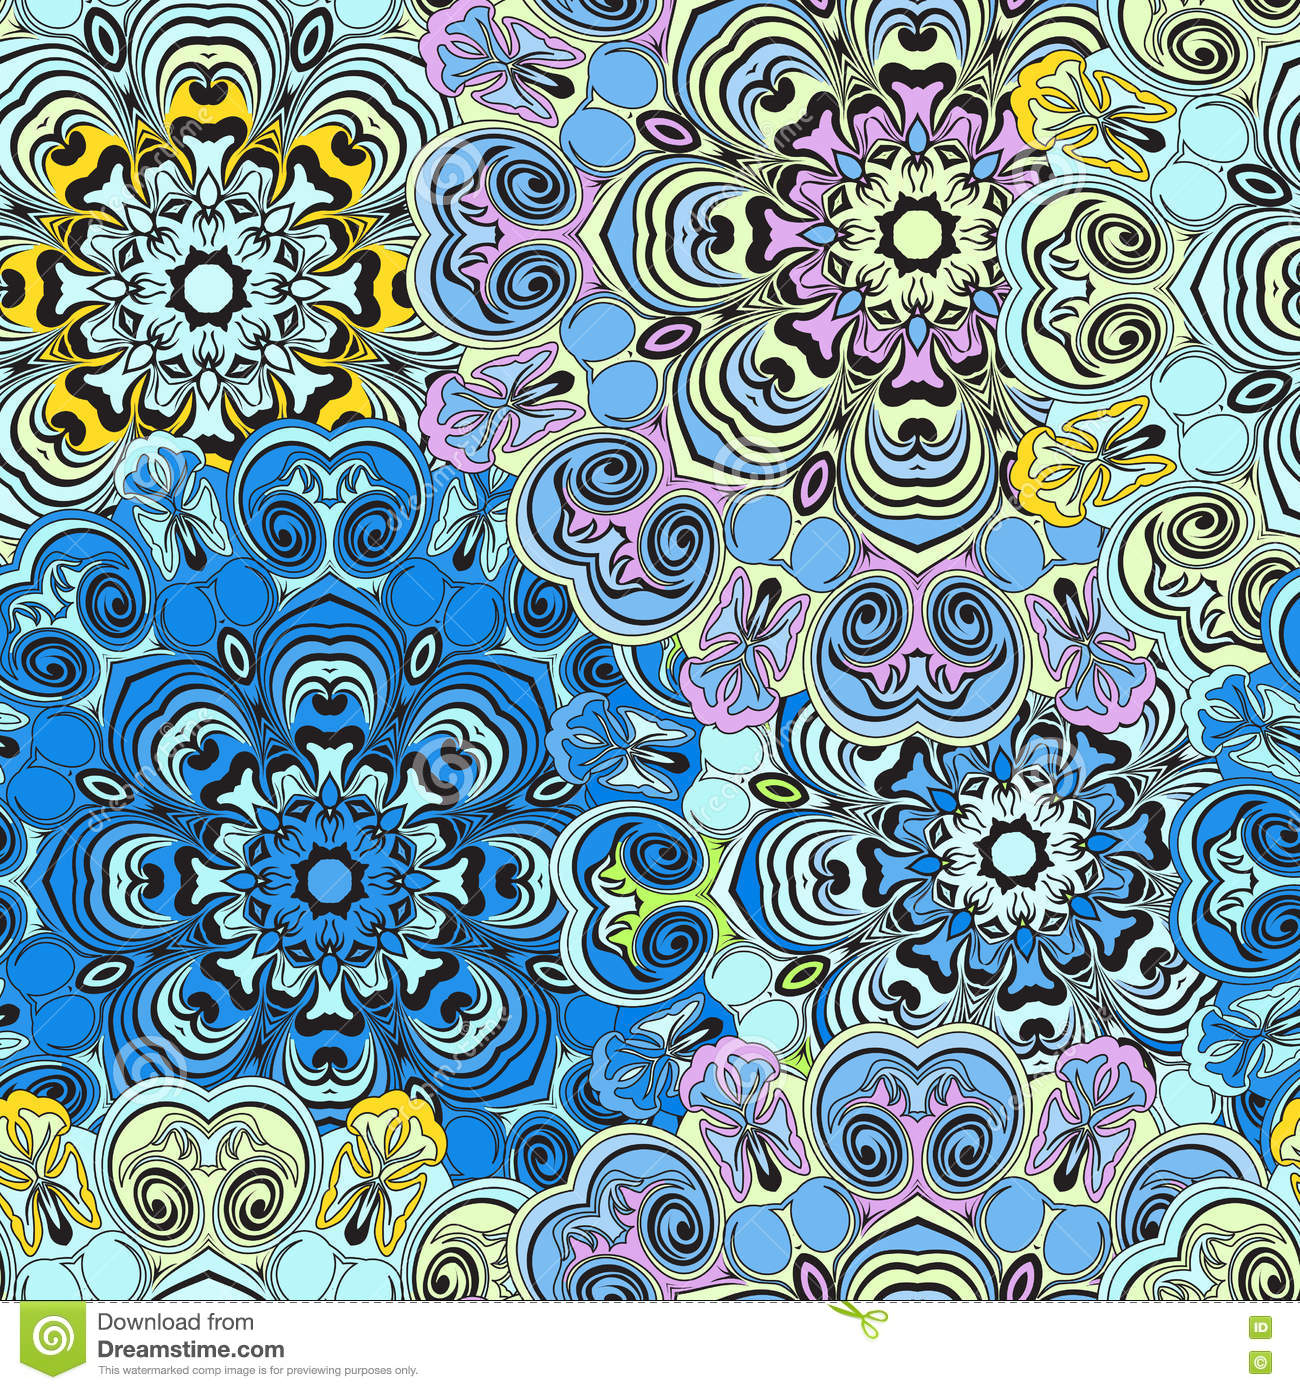 Turkish Design Wallpaper : Seamless pattern in oriental style colorful wallpaper or